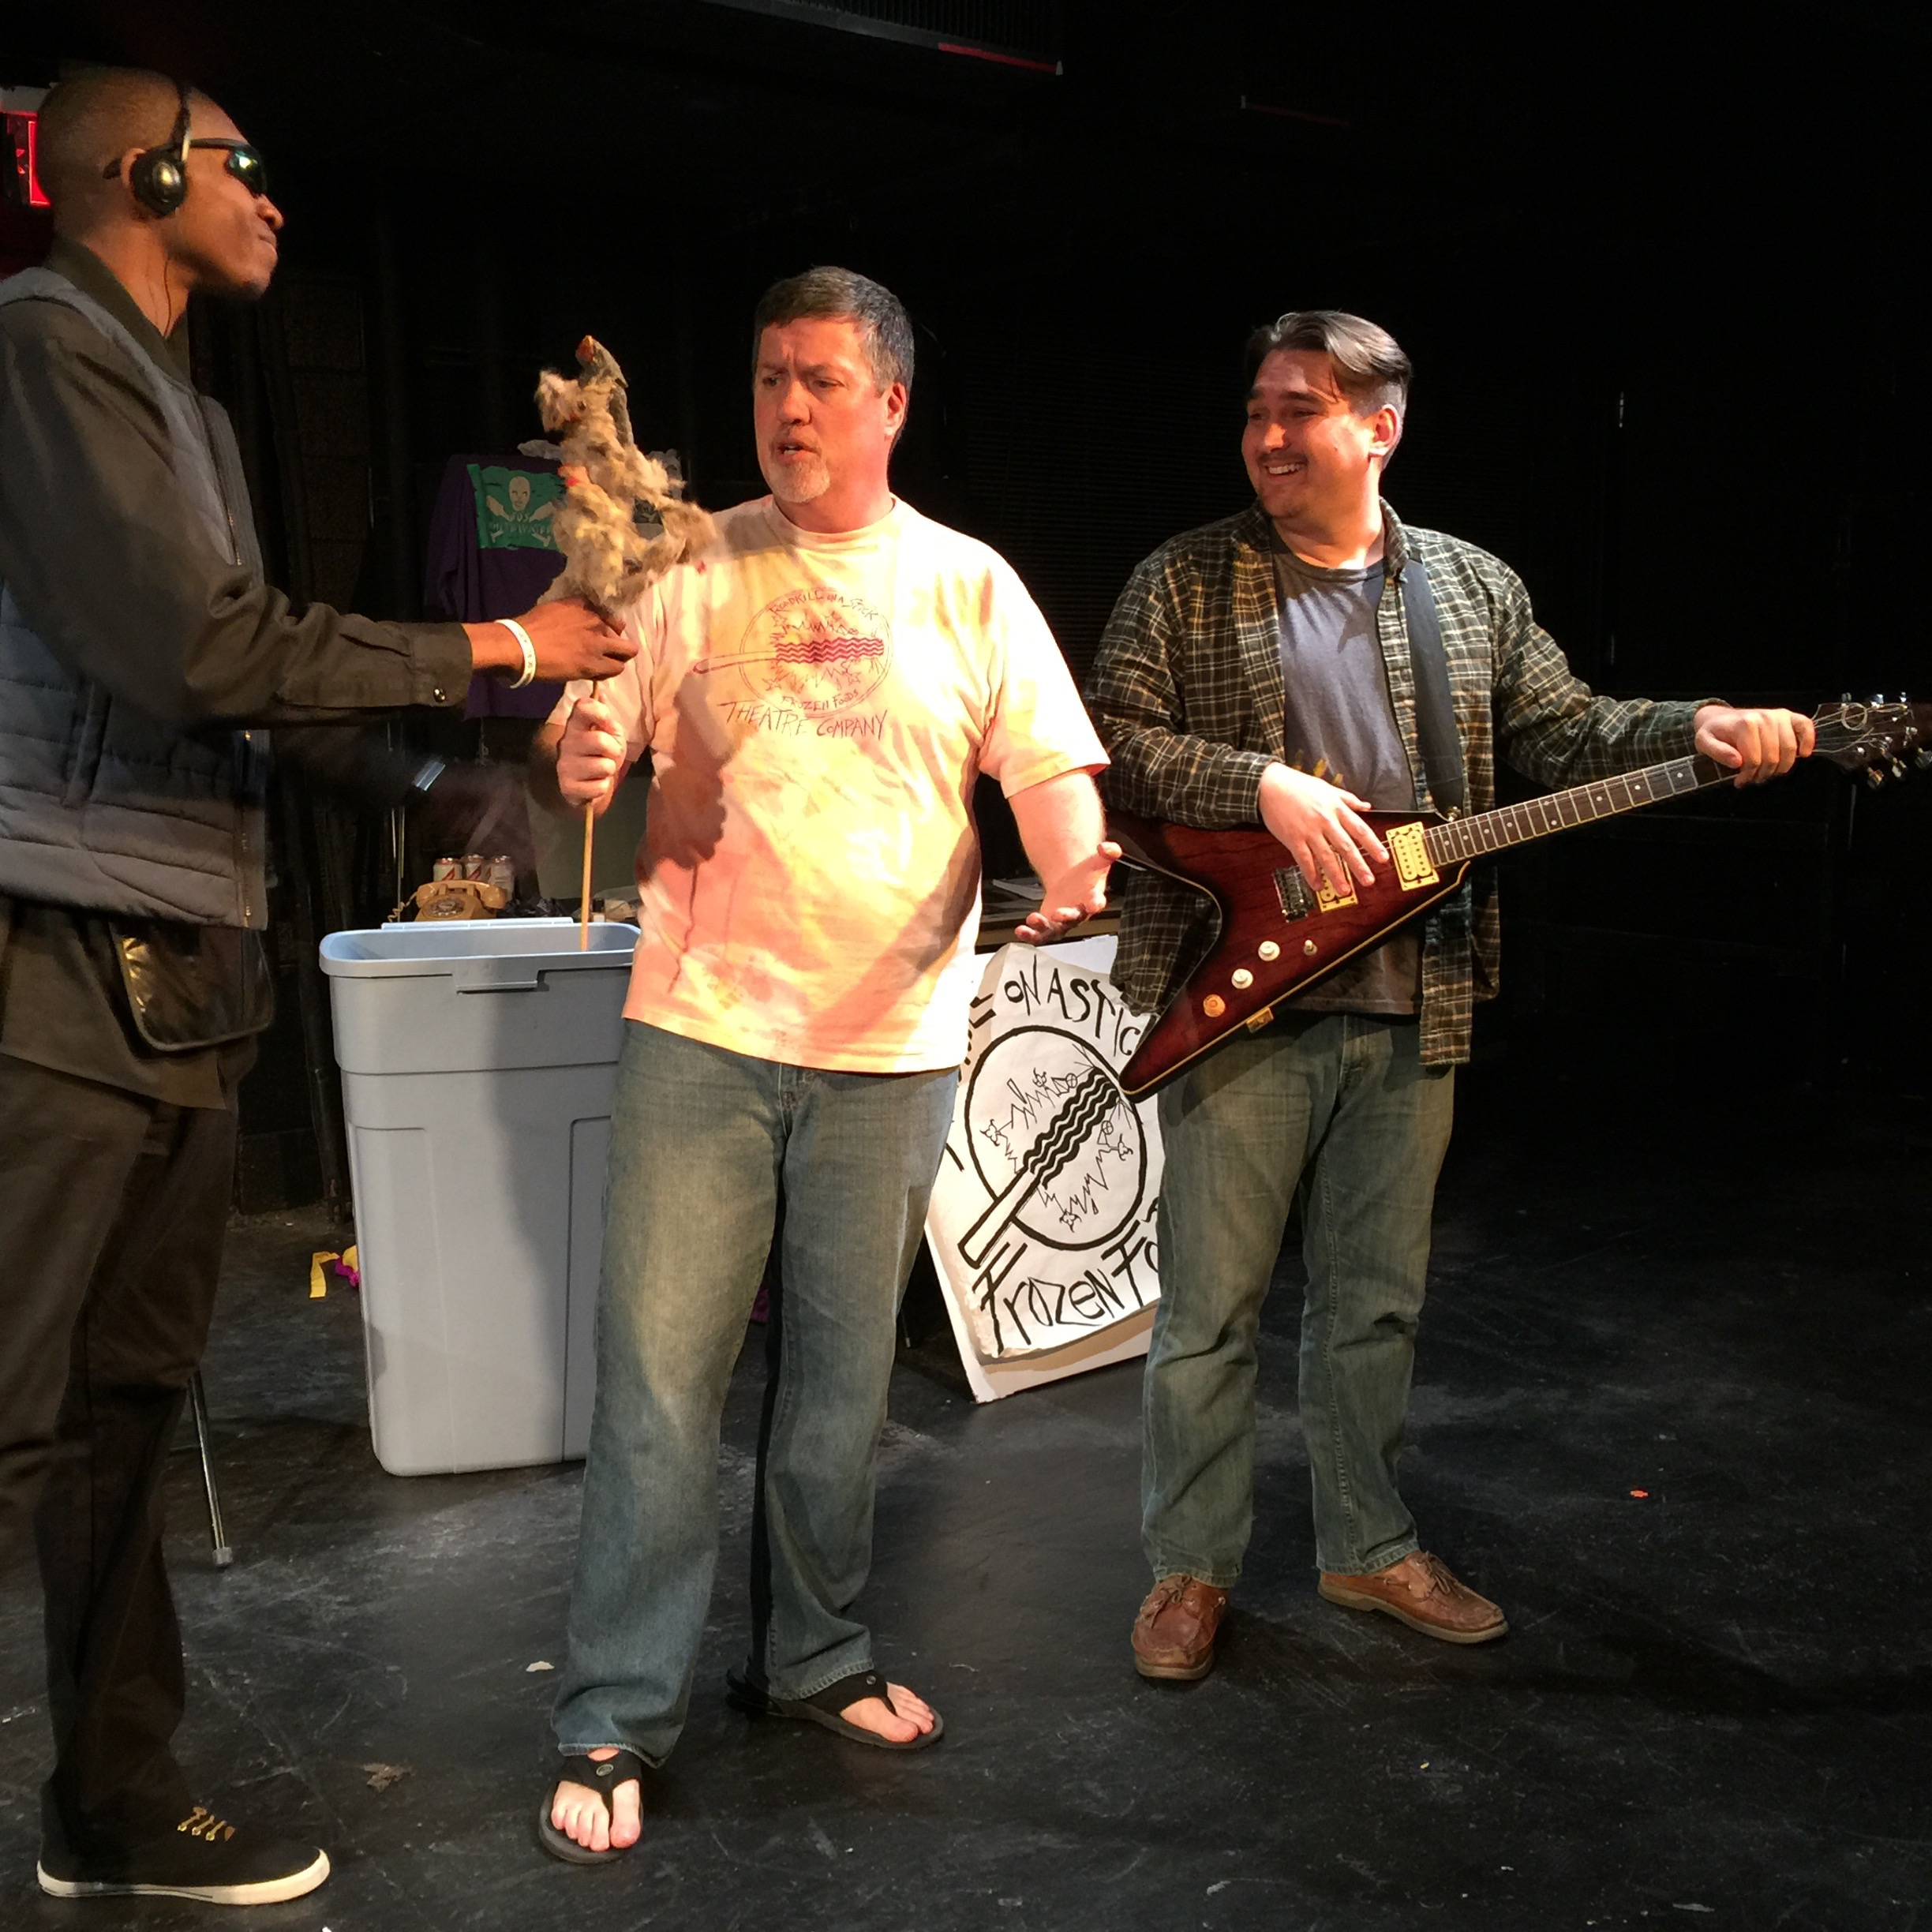 Photo of Marvin handing a roadkill on a stick to Stephan as Dave looks on